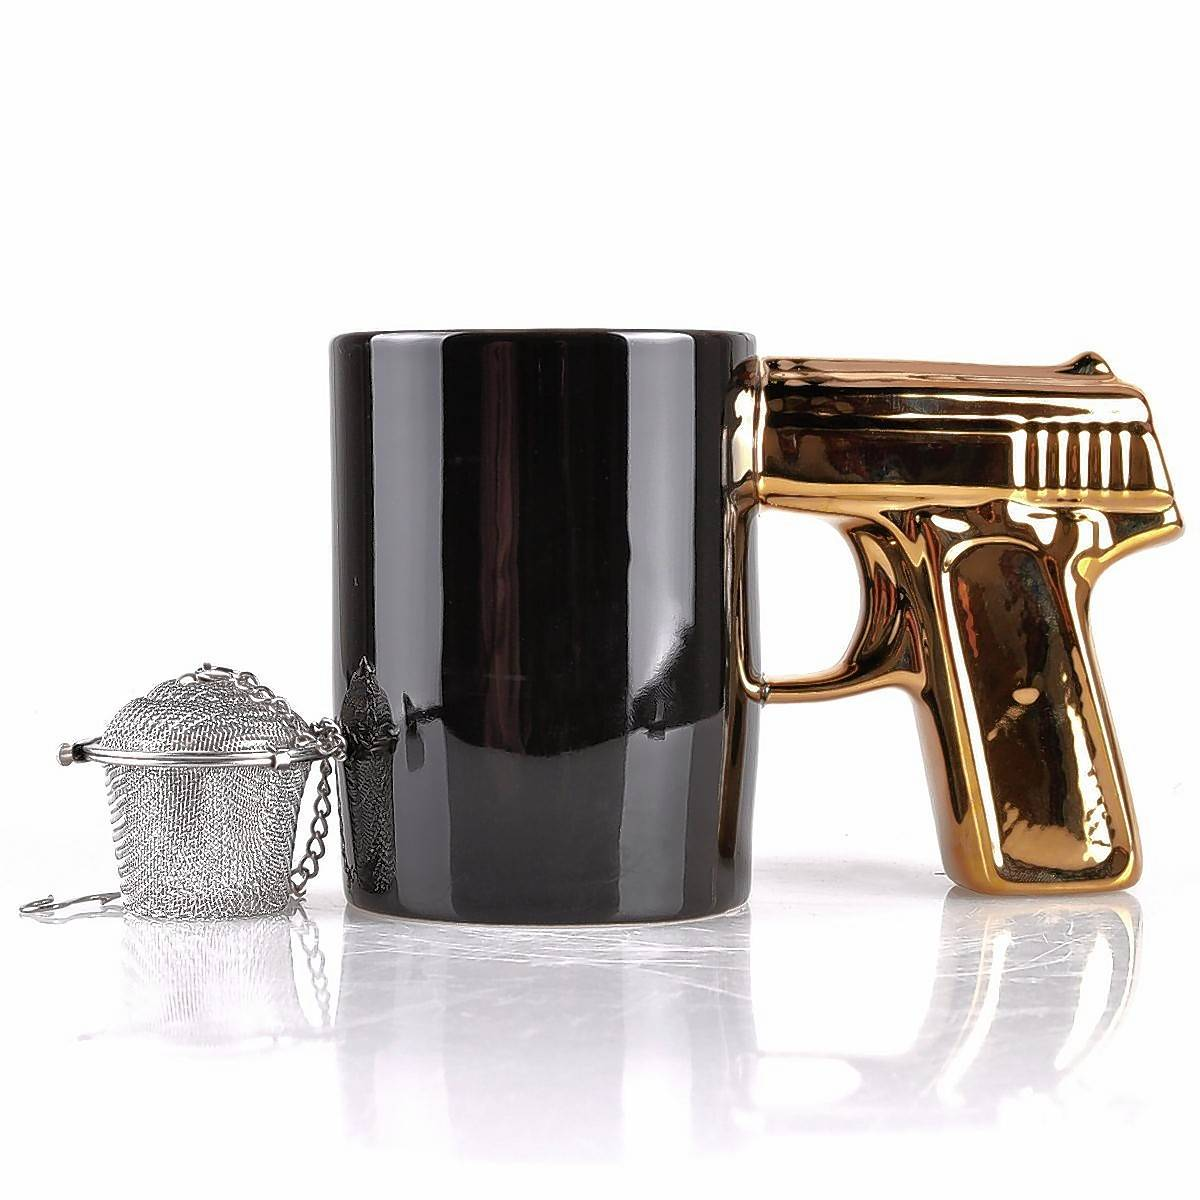 A cup of tea doesn't seem quite as quaint when it appears as if the drinker is holding a gun to his head.